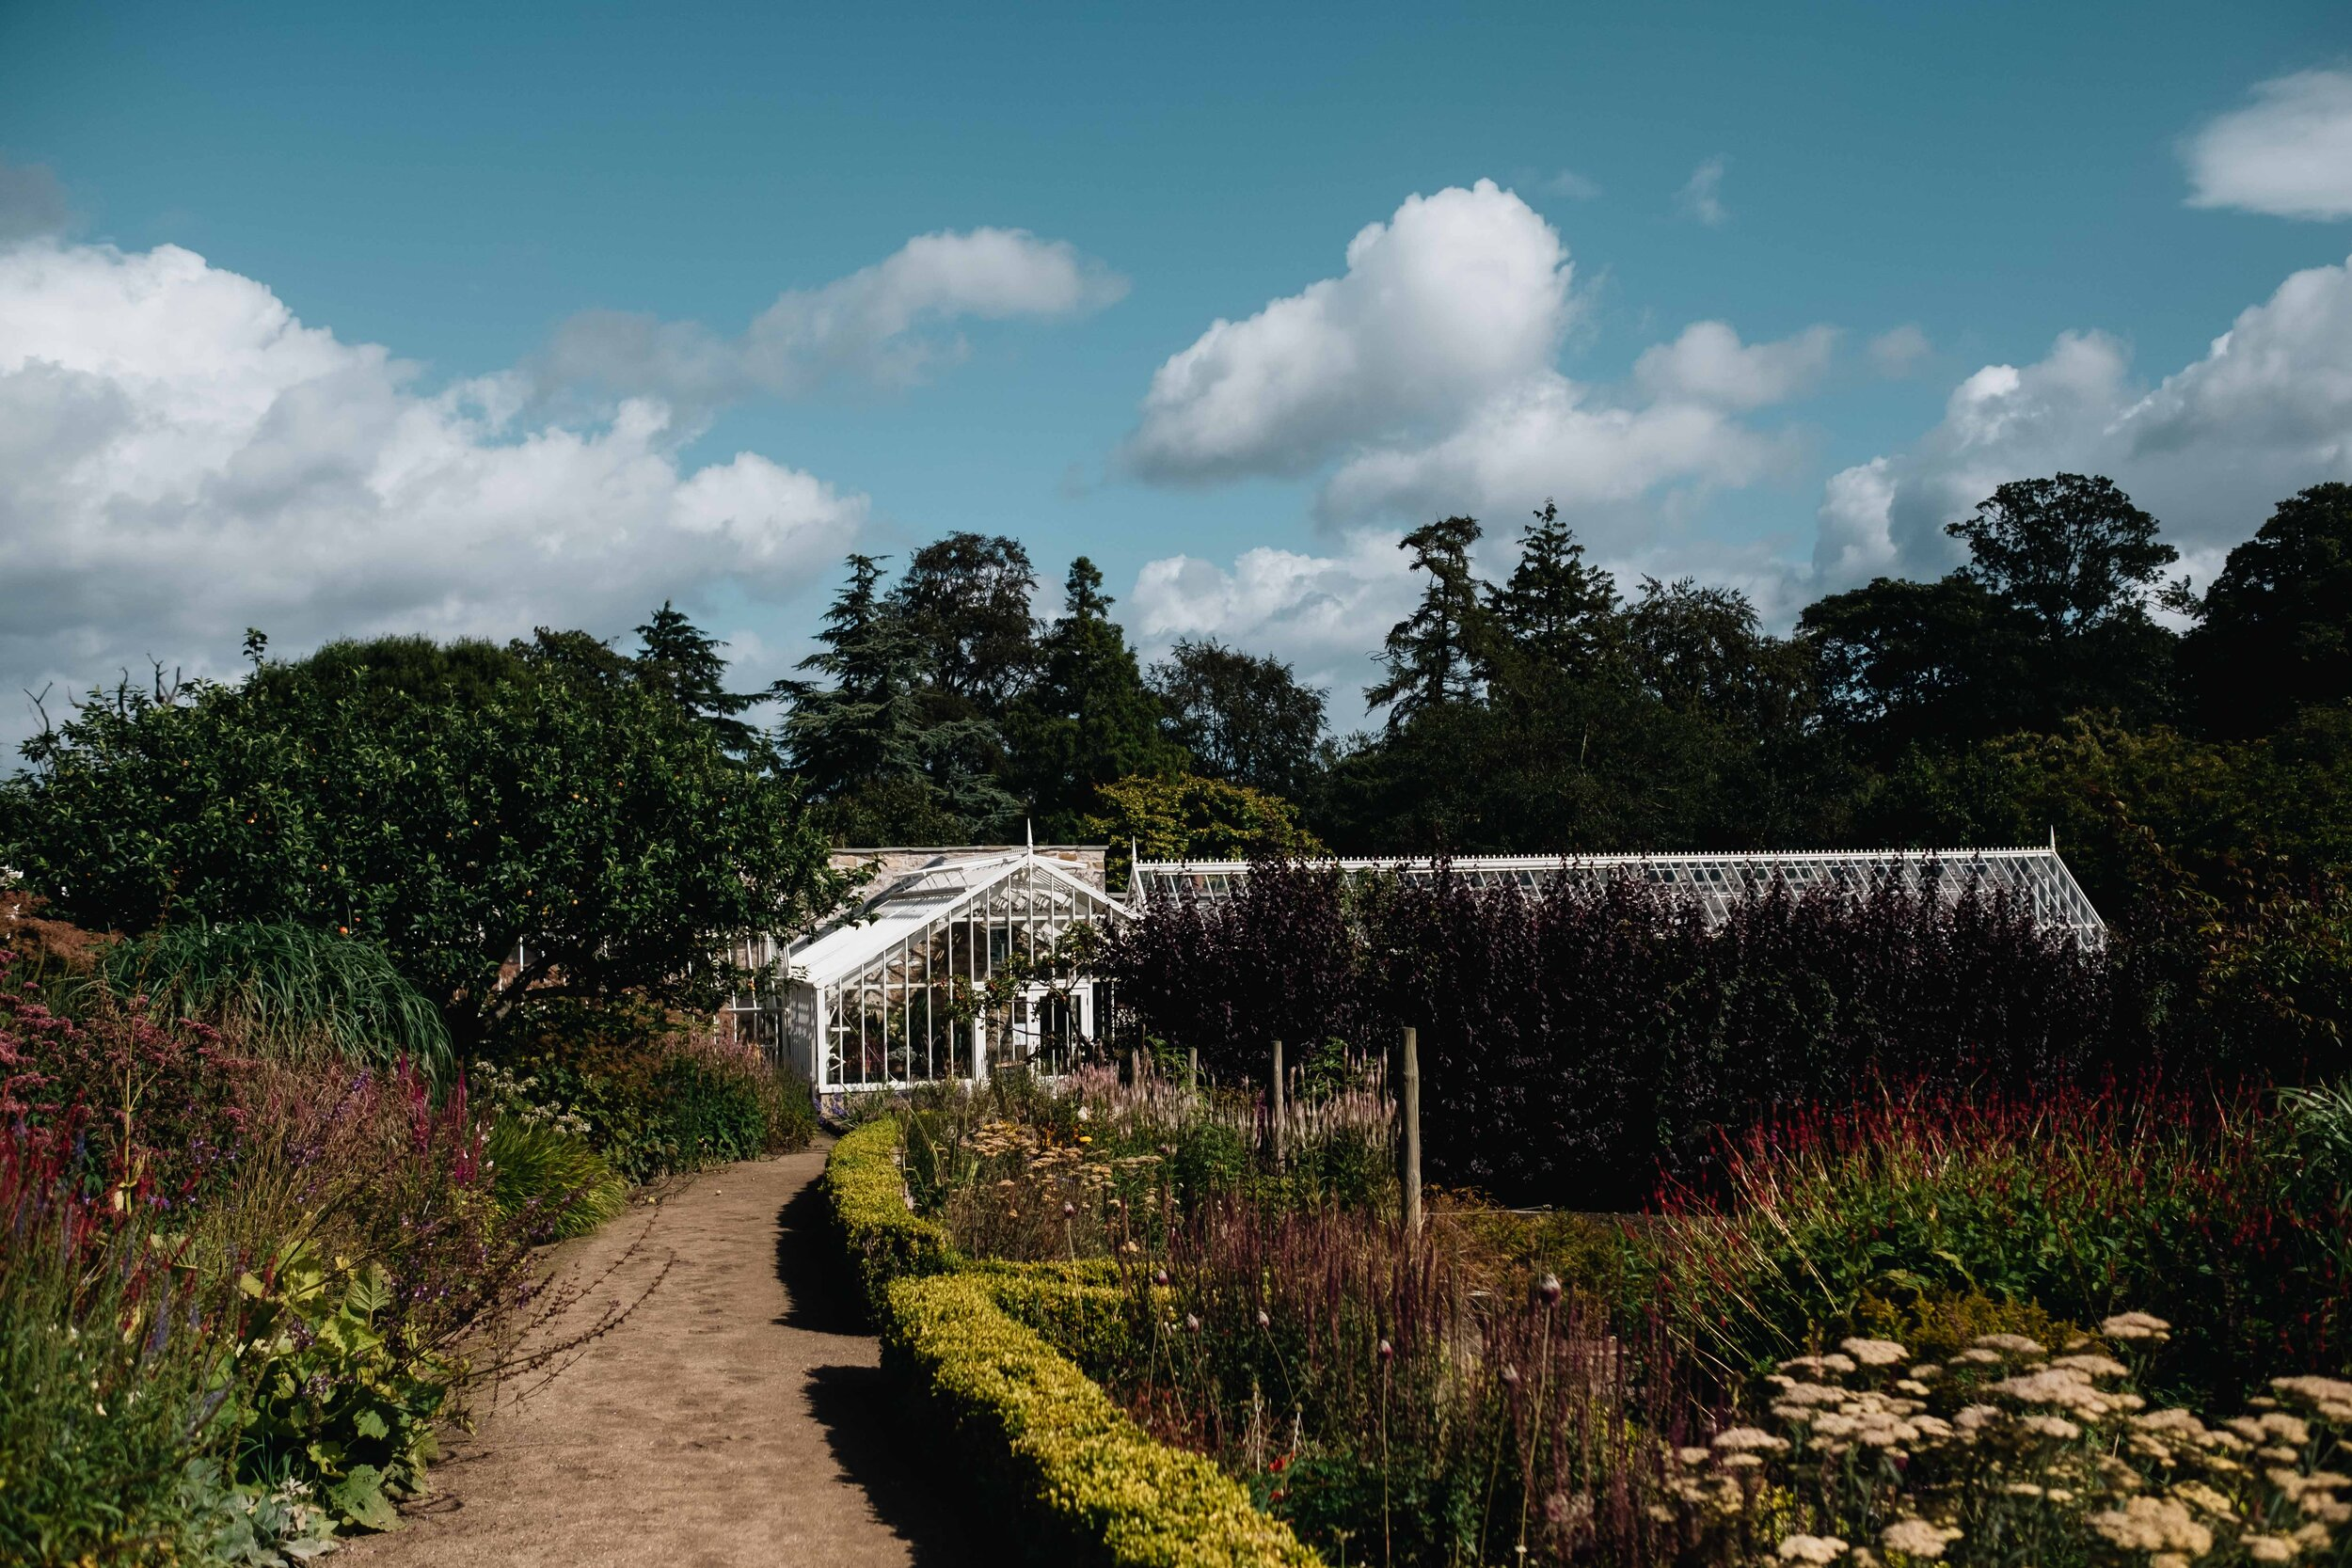 The Walled Garden of Cambo House.